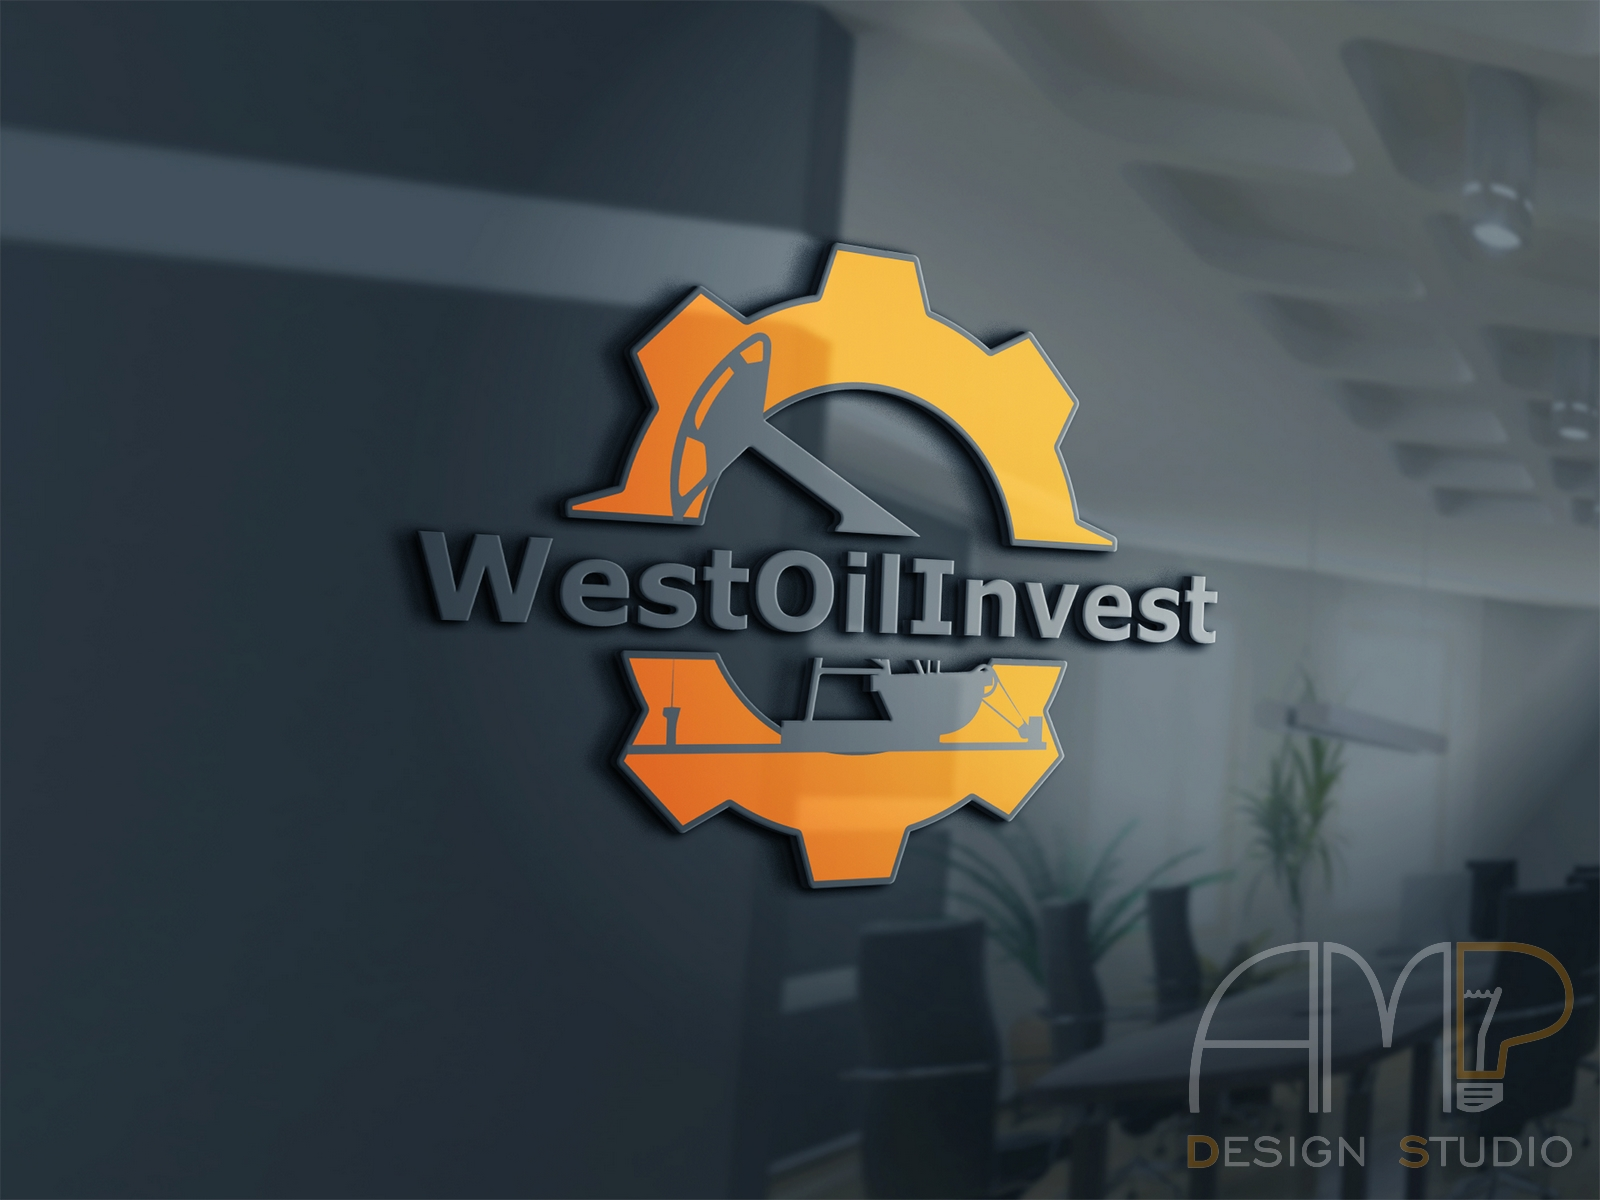 West oil invest logo 1